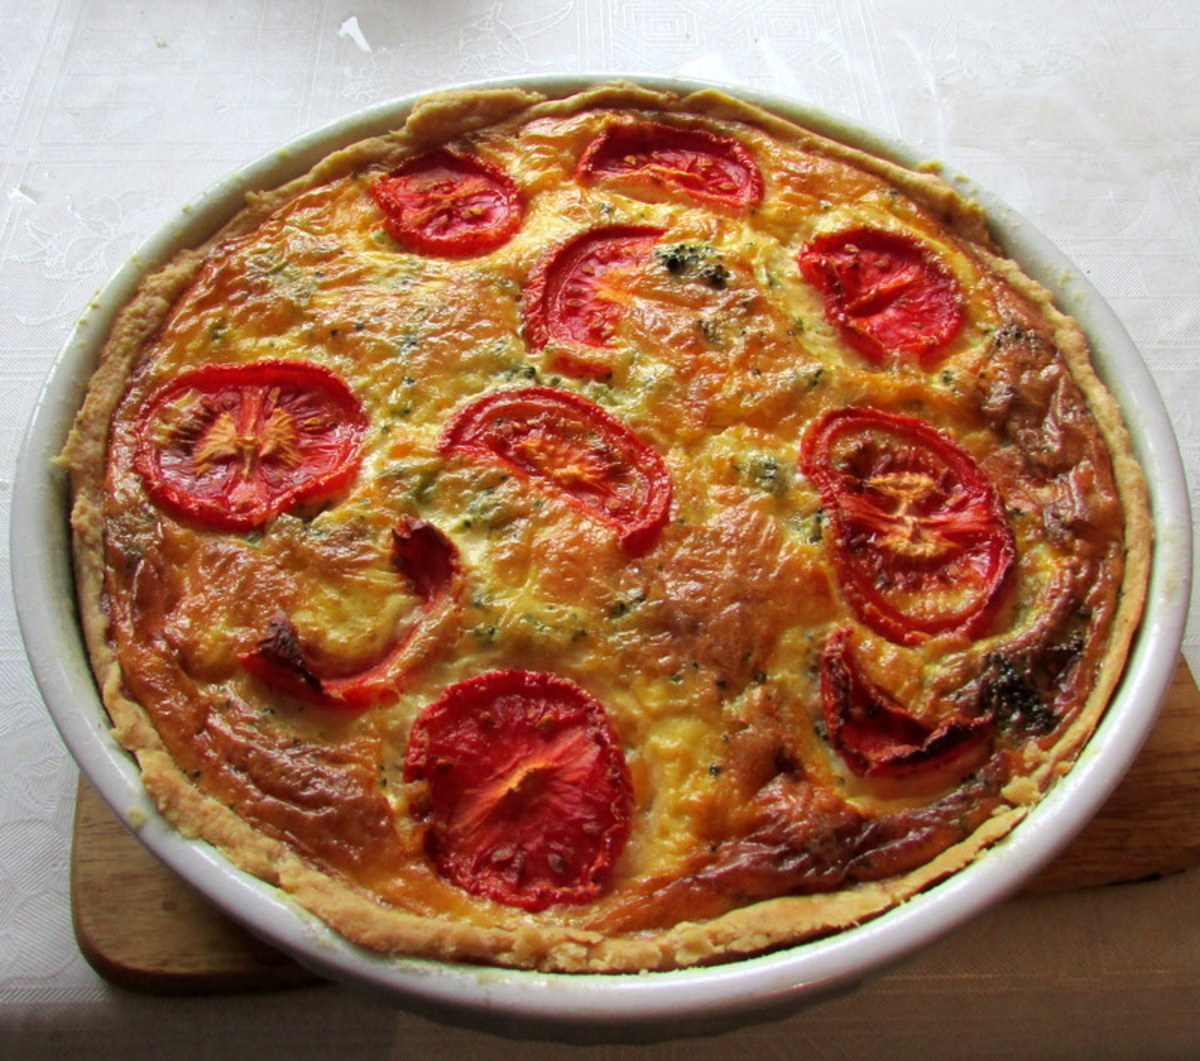 Homemade Quiche Lorraine, fresh out of the oven.